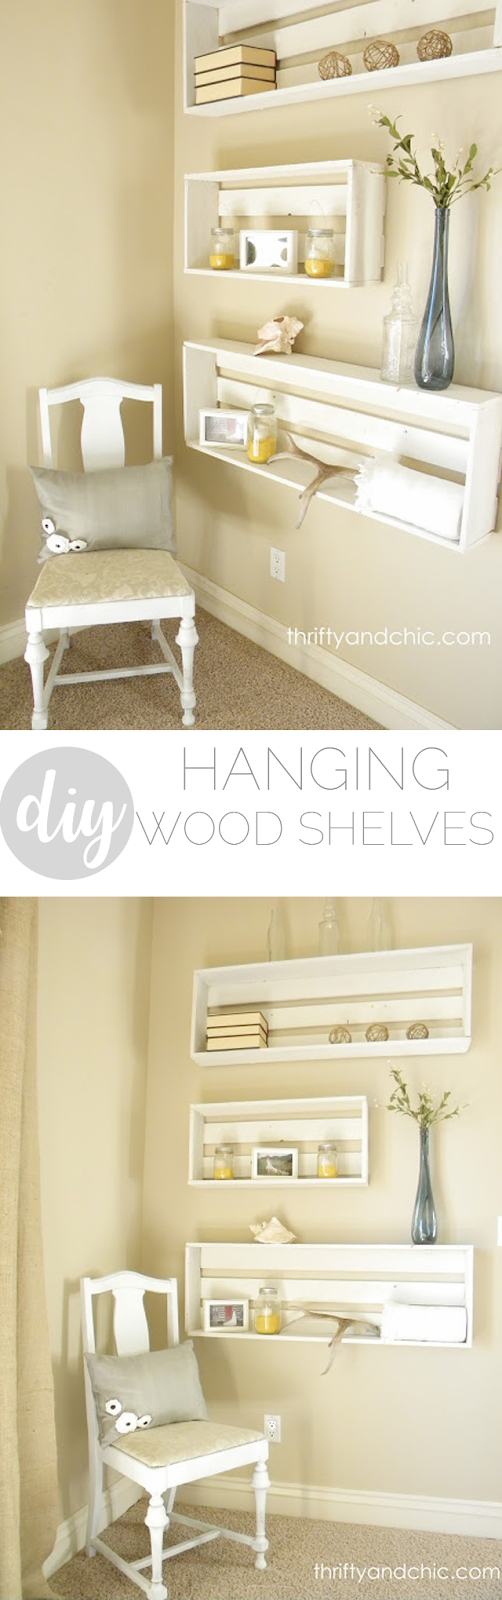 100 thrifty home decorating blogs best decorating bloggers thrifty and chic diy projects and home decor diy farmhouse style hanging shelves made from wood